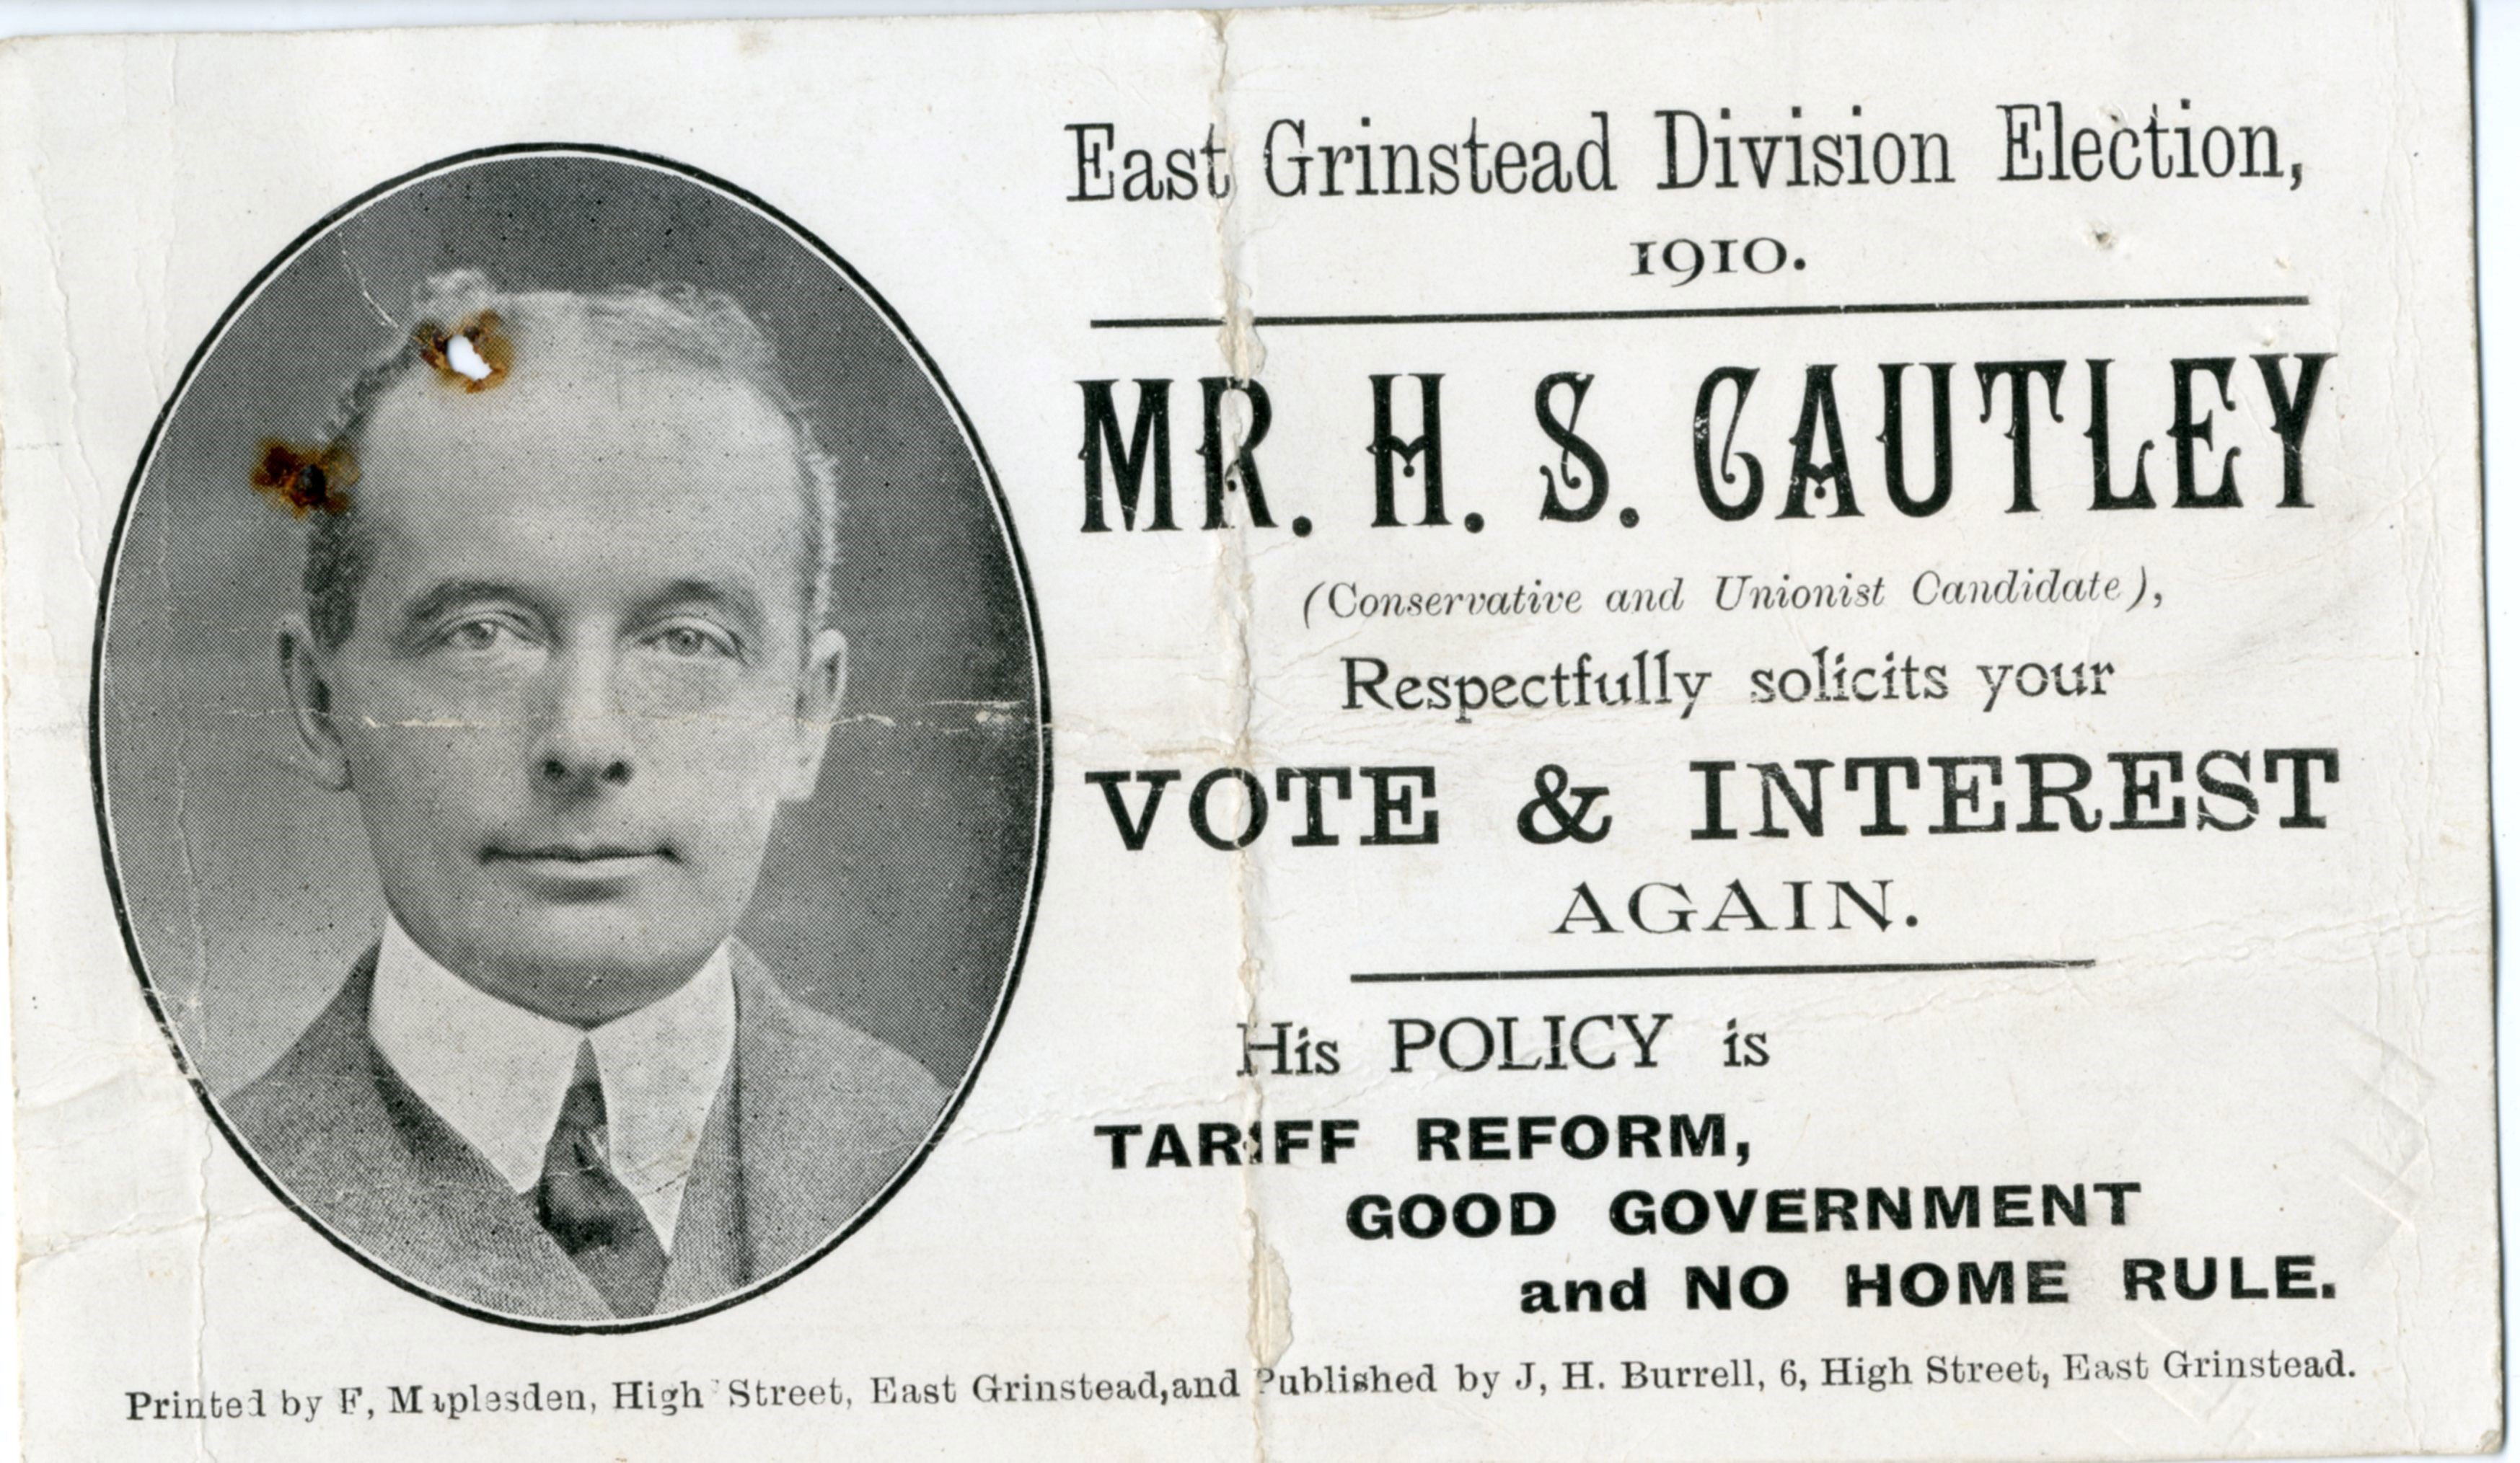 East Grinstead Museum – Solicitation card from Mr. H.S Cautley for the Conservative & Unionist Party